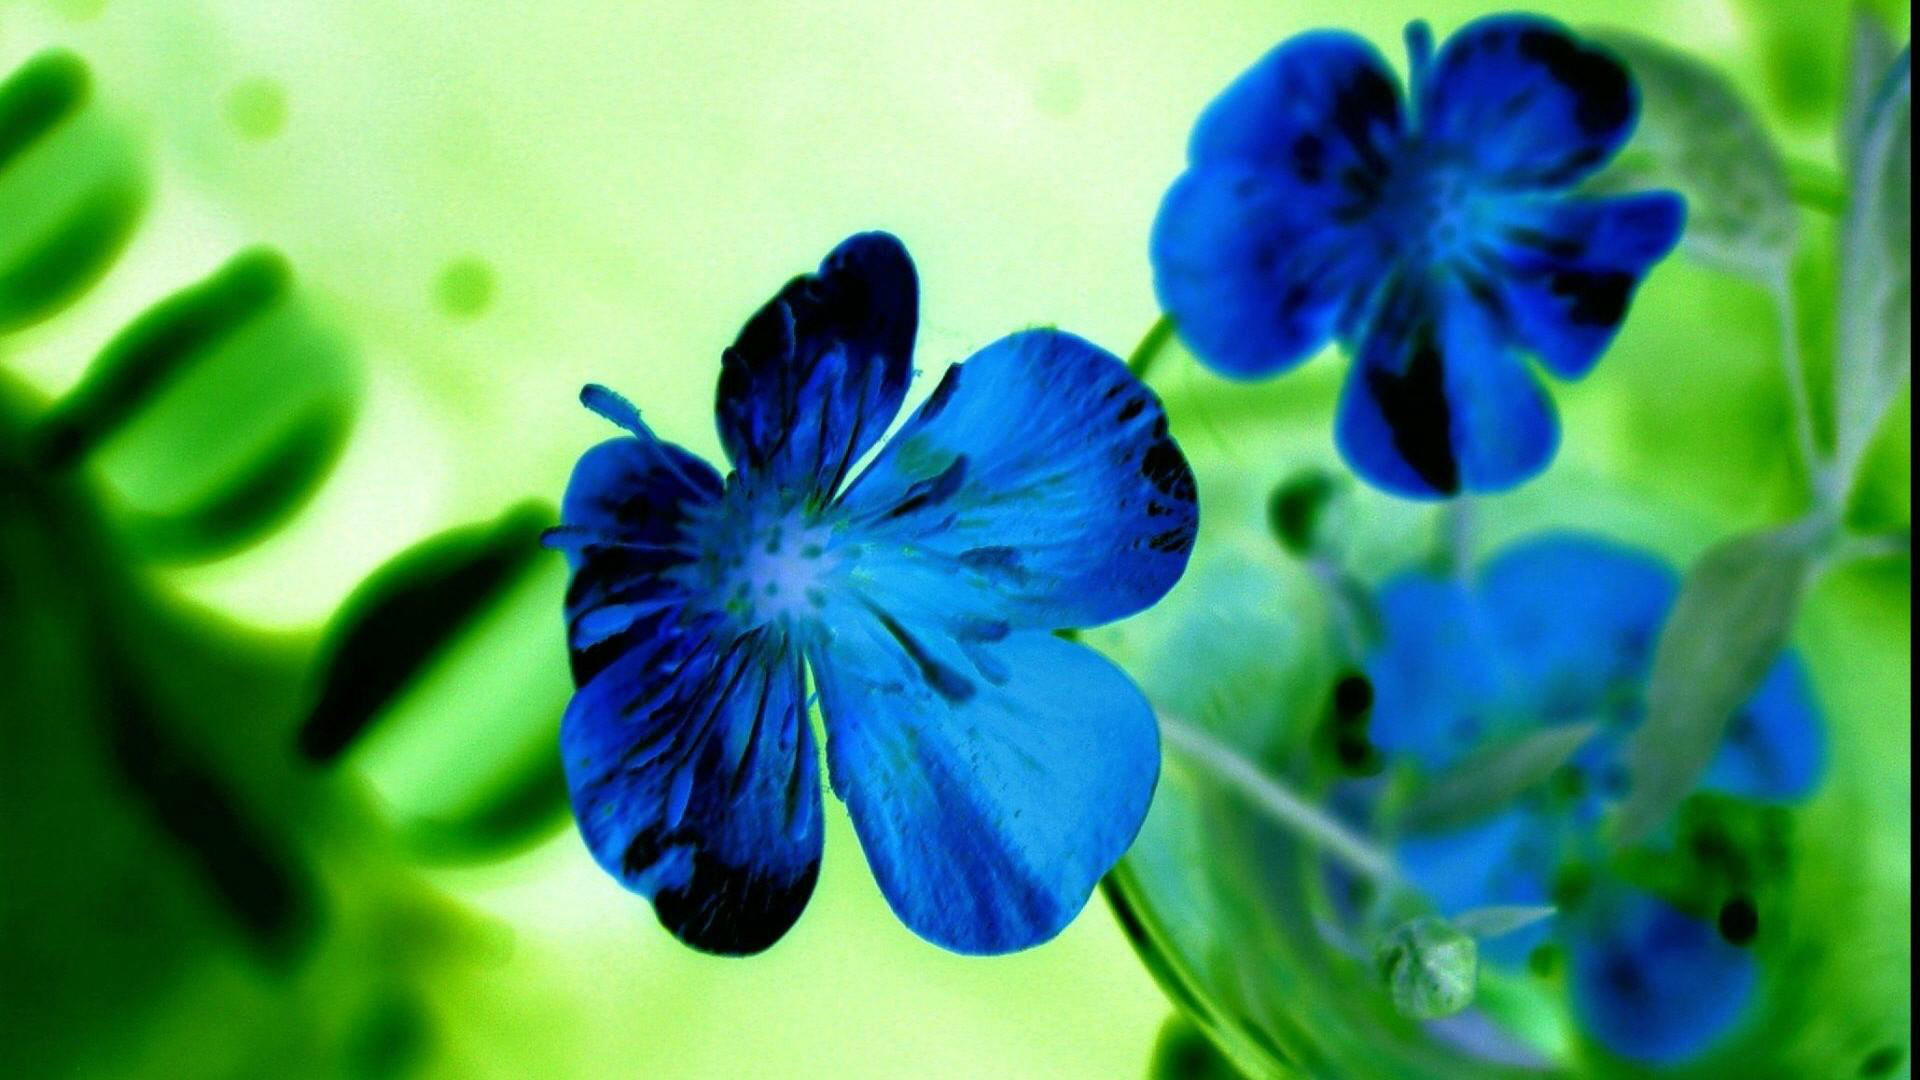 Res: 1920x1080, Hd Flower Wallpaper 1080p Backgrounds Blue Flowers Of Desktop